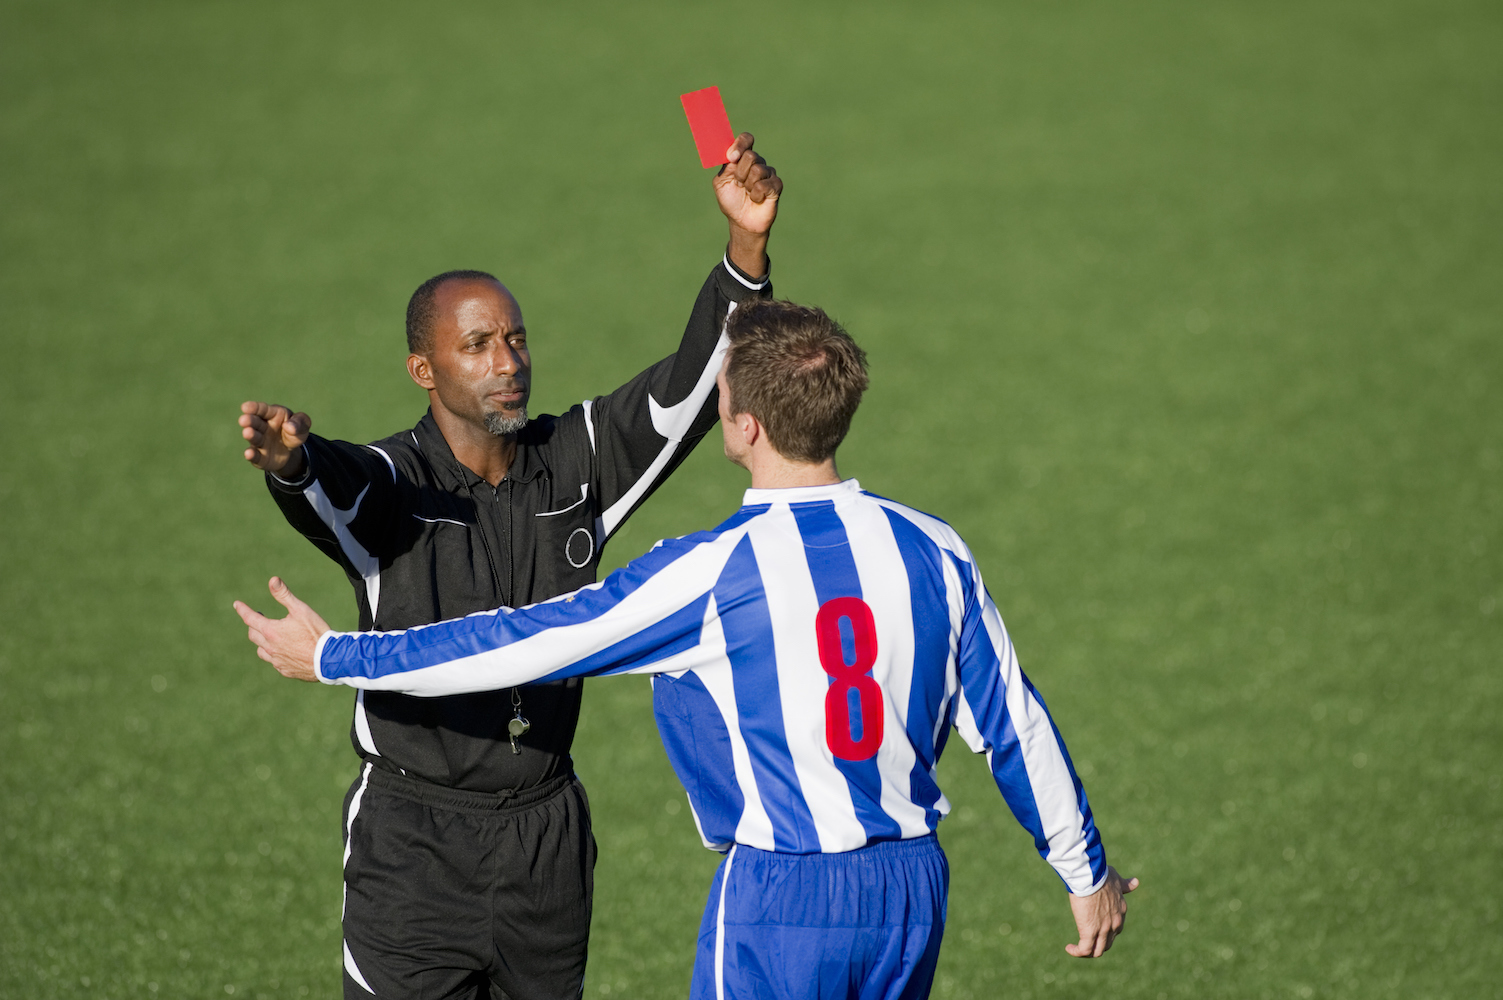 Gay Soccer Referee Quits After Abuse